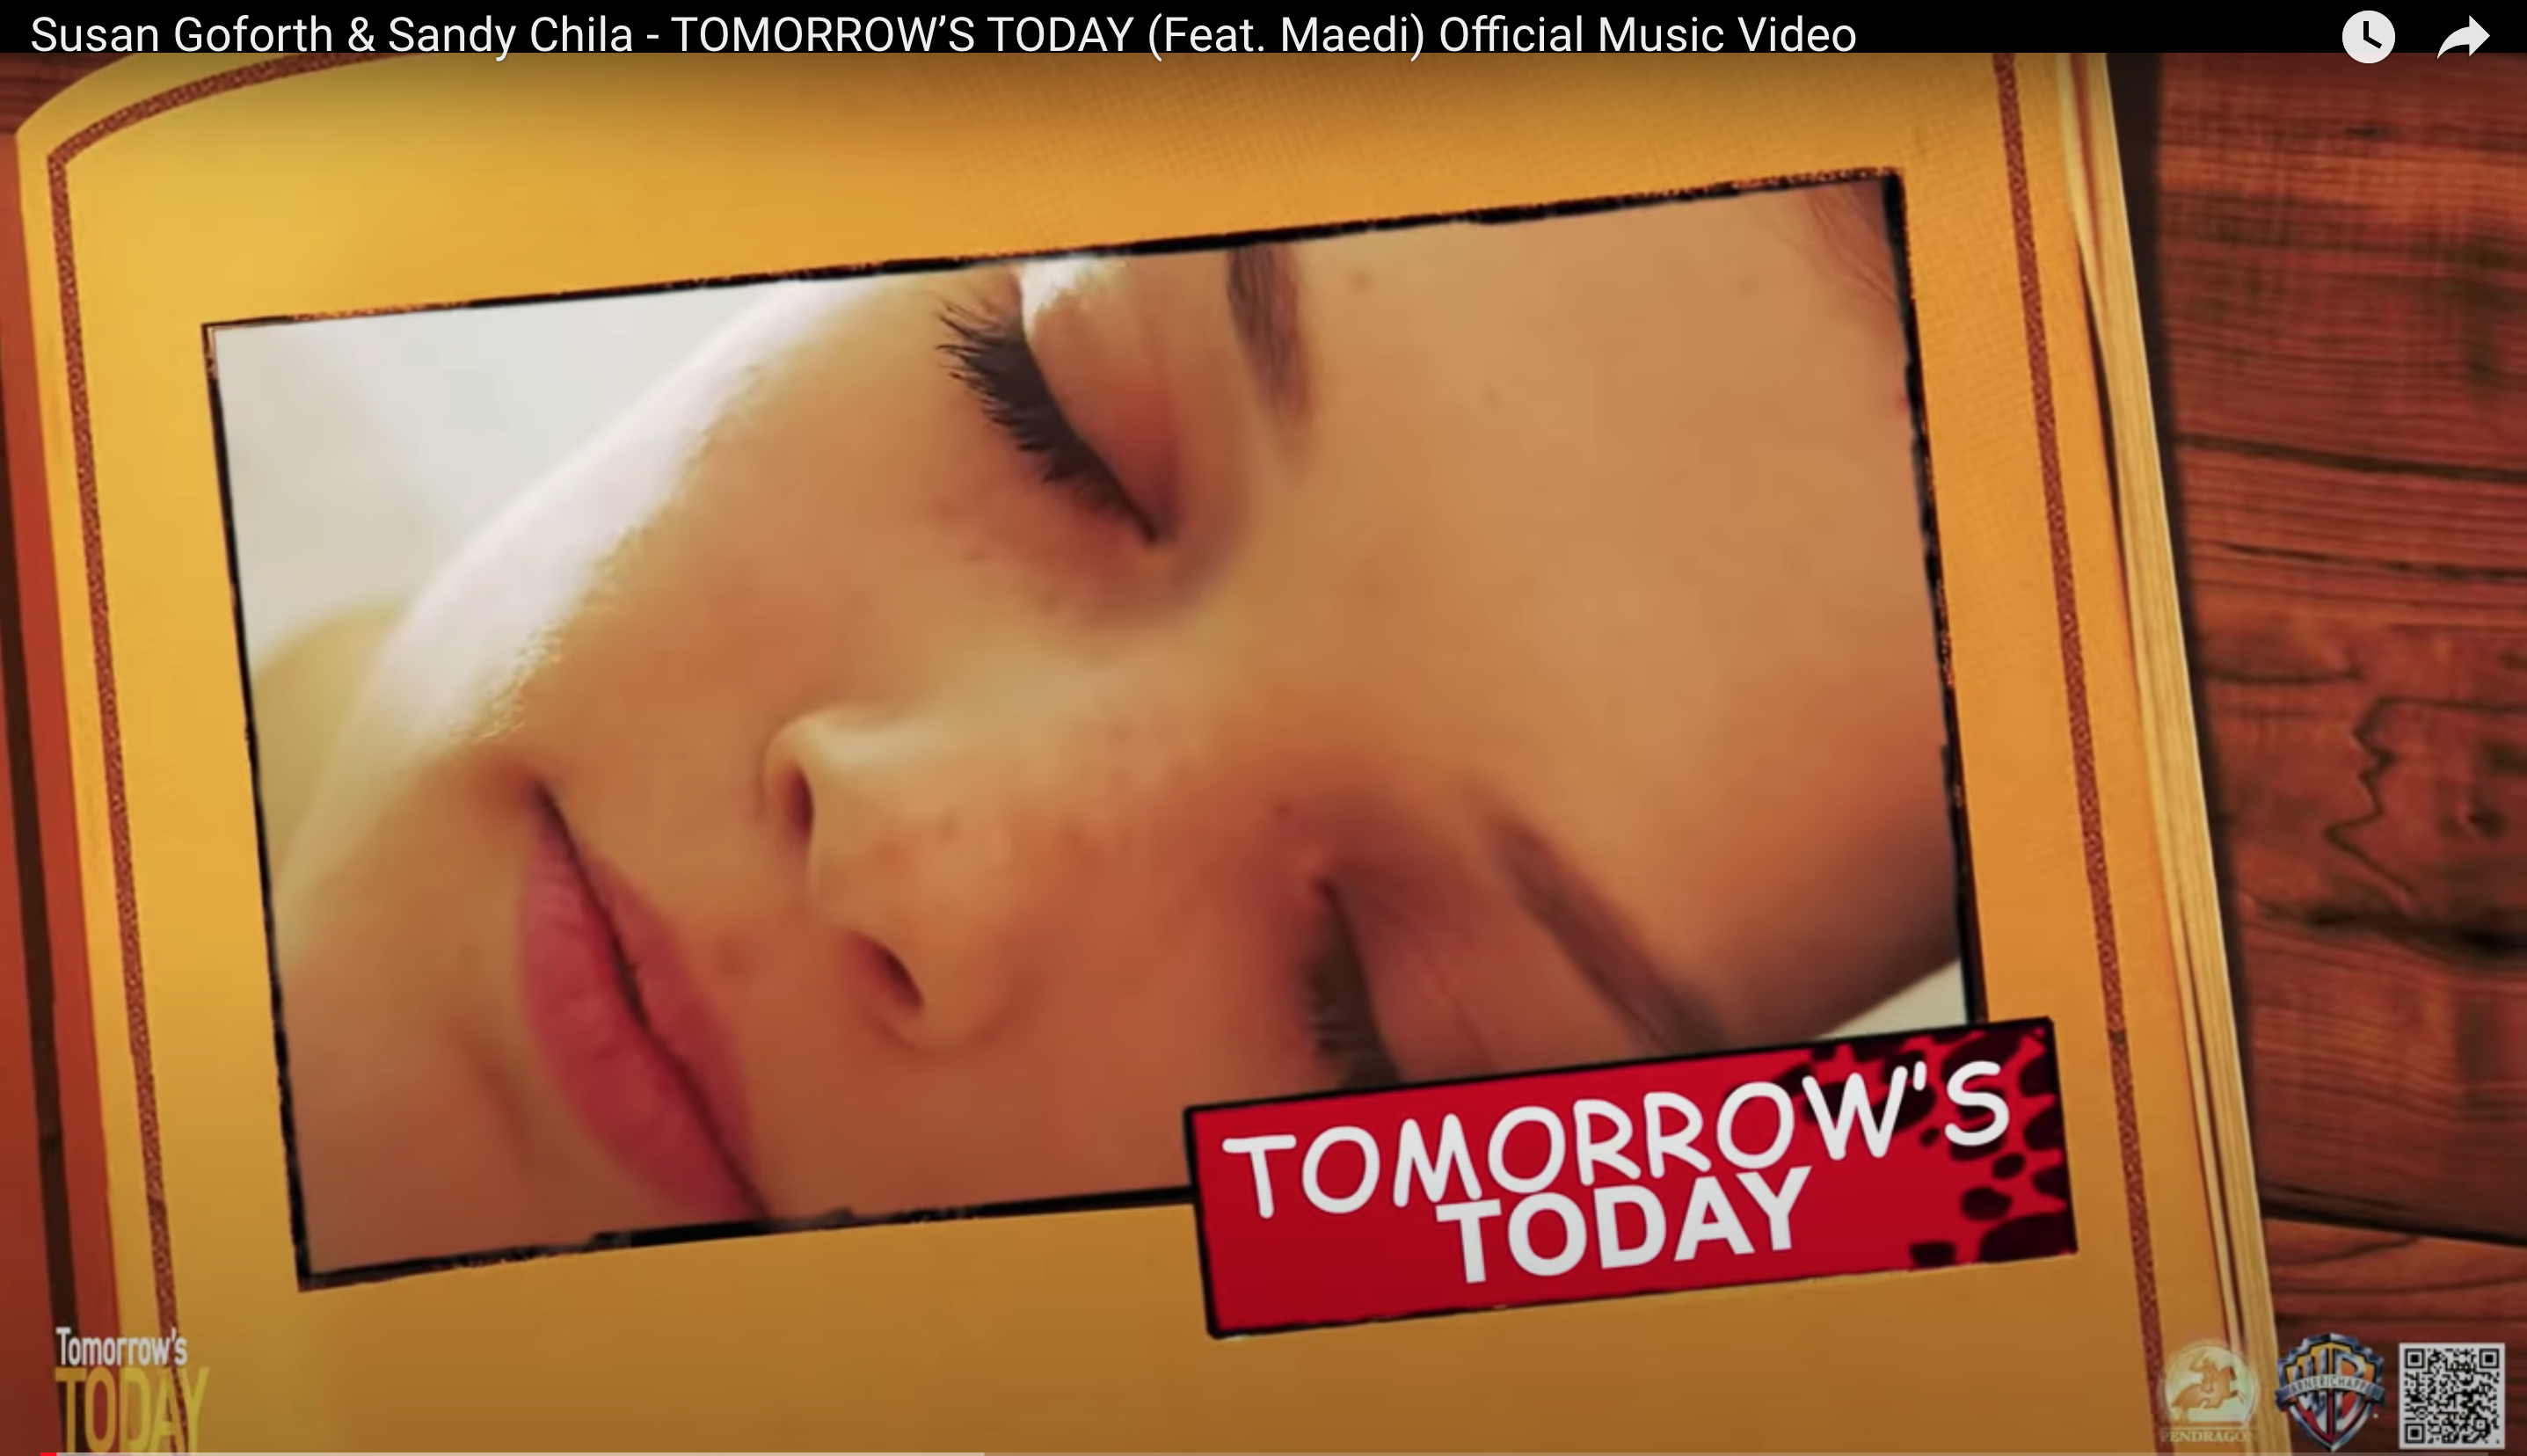 """Timothy Hines official music video for """"Tomorrow's Today"""" Released - Susan Goforth, Sandy Chila, Maedi movie theme collaboration."""